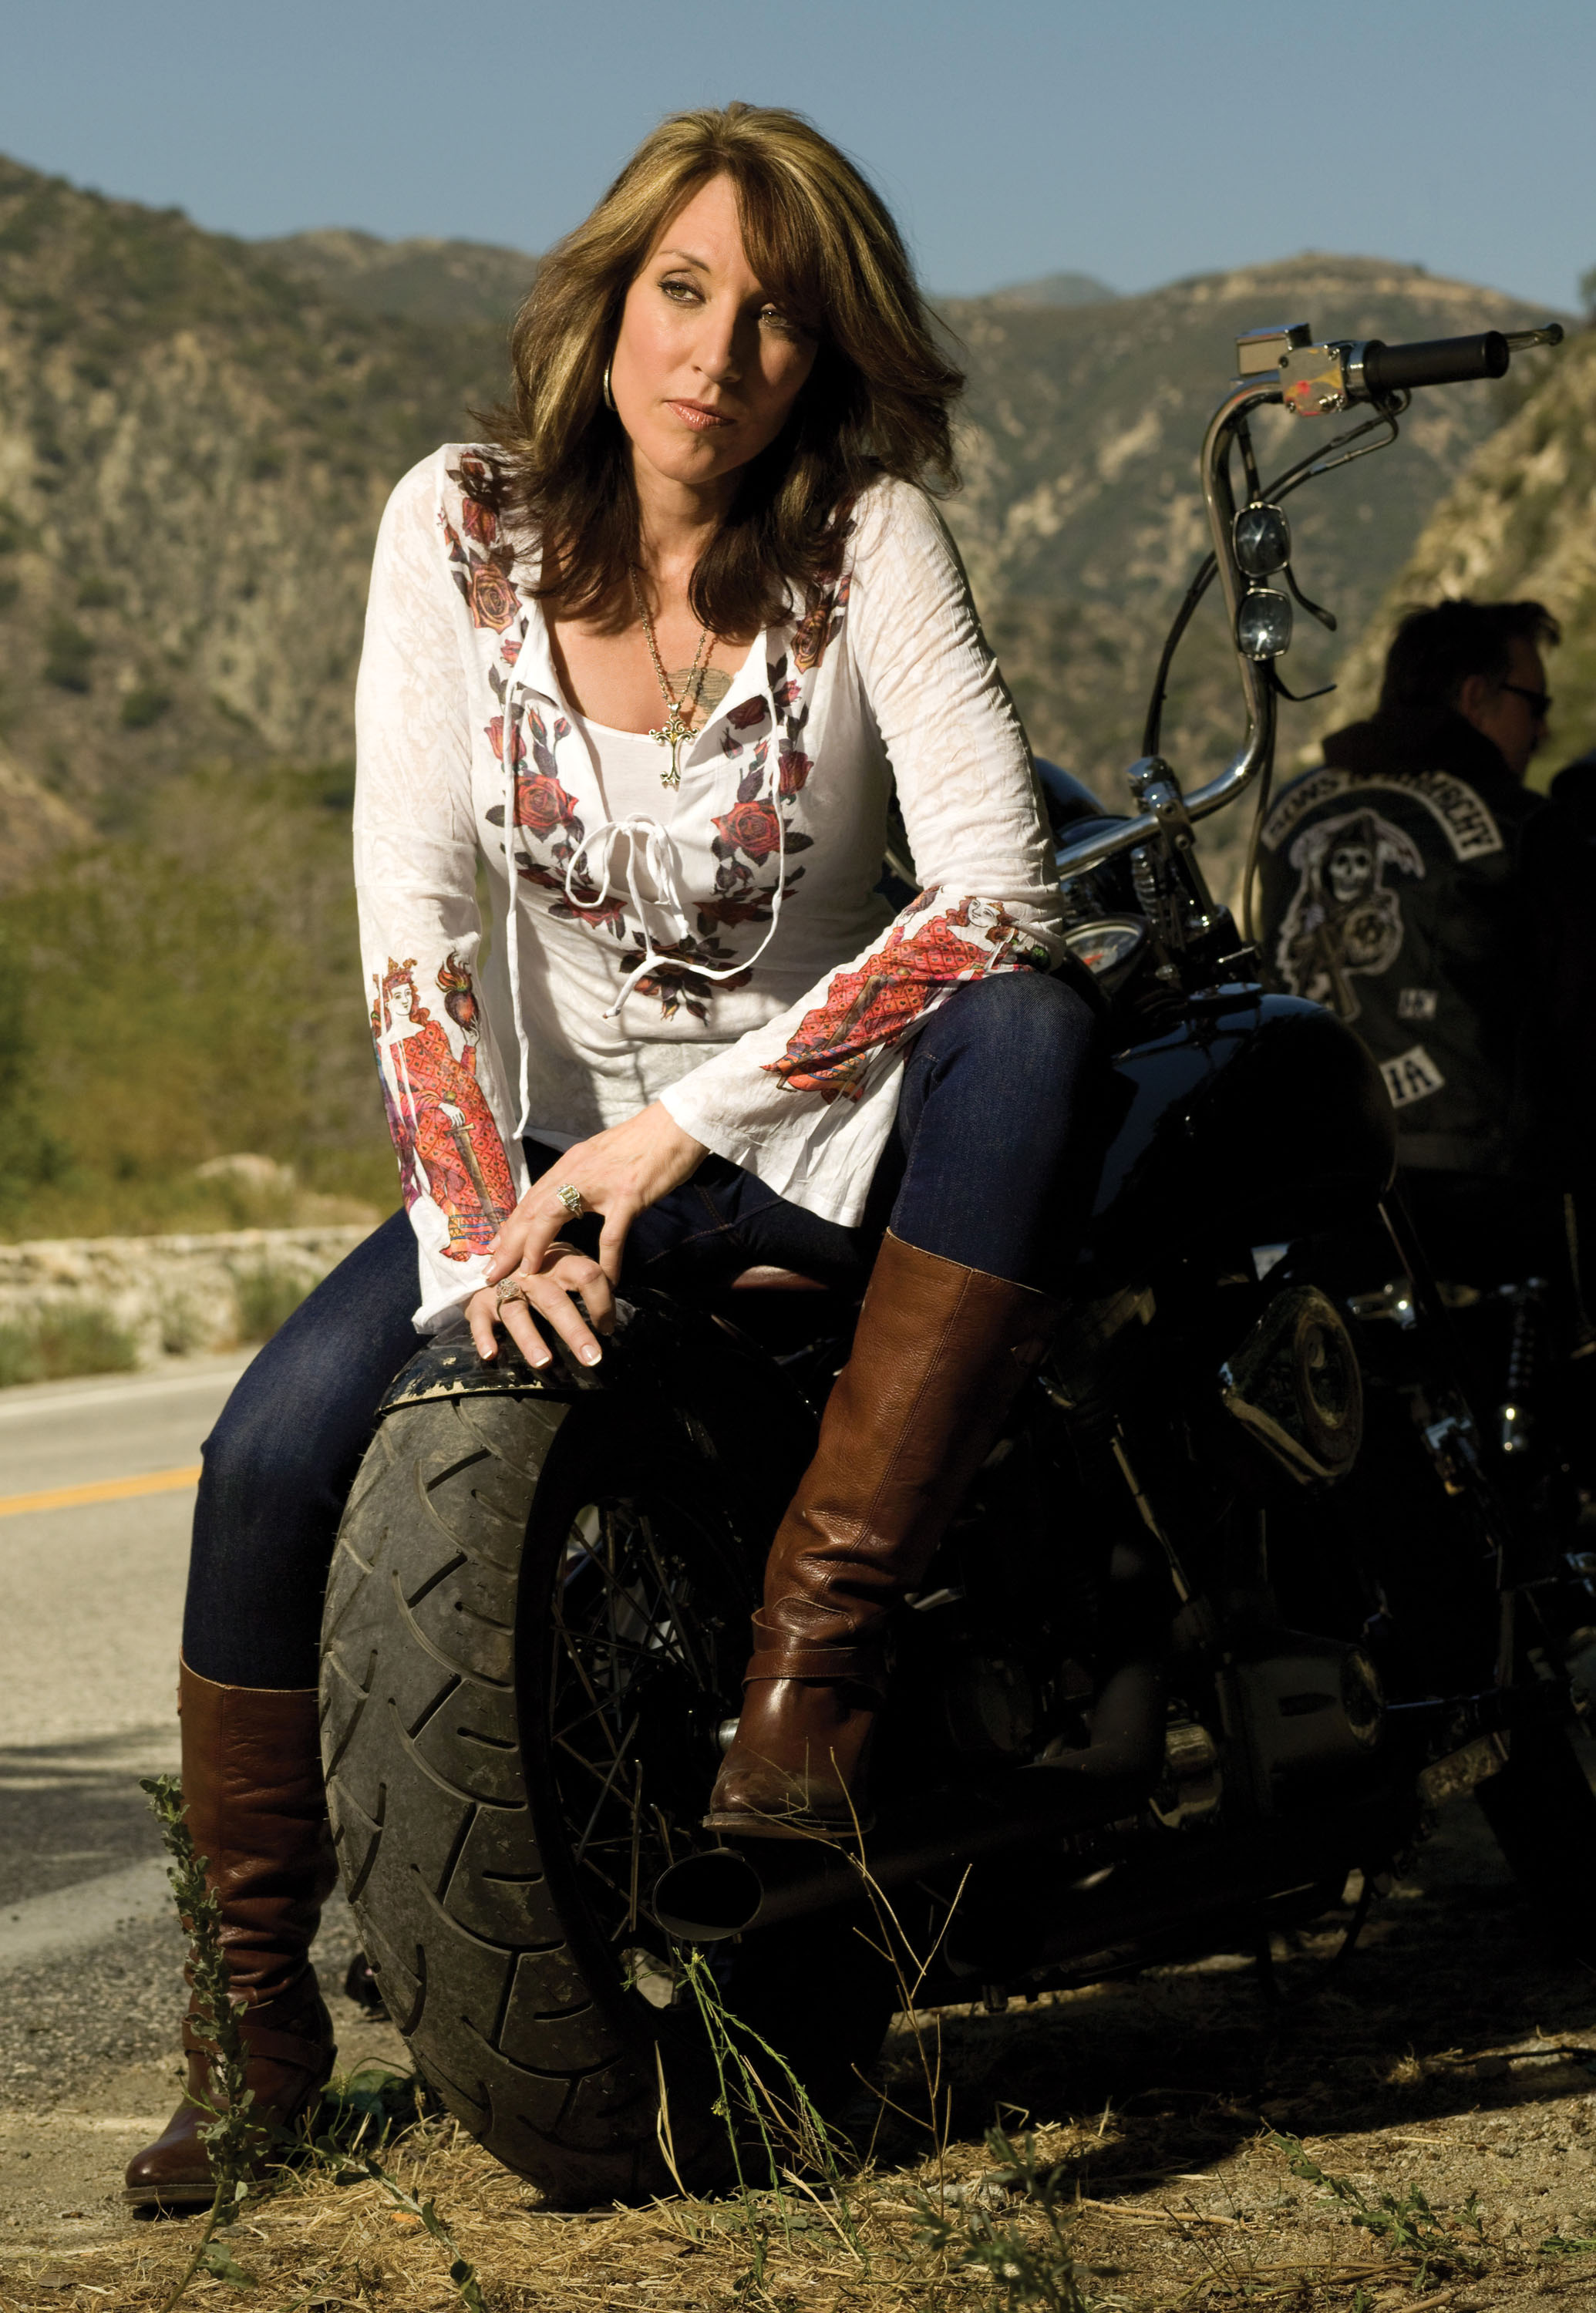 Katey Sagal Picture 27 - Screening of FX's Sons of Anarchy ... |Katey Sagal 1980